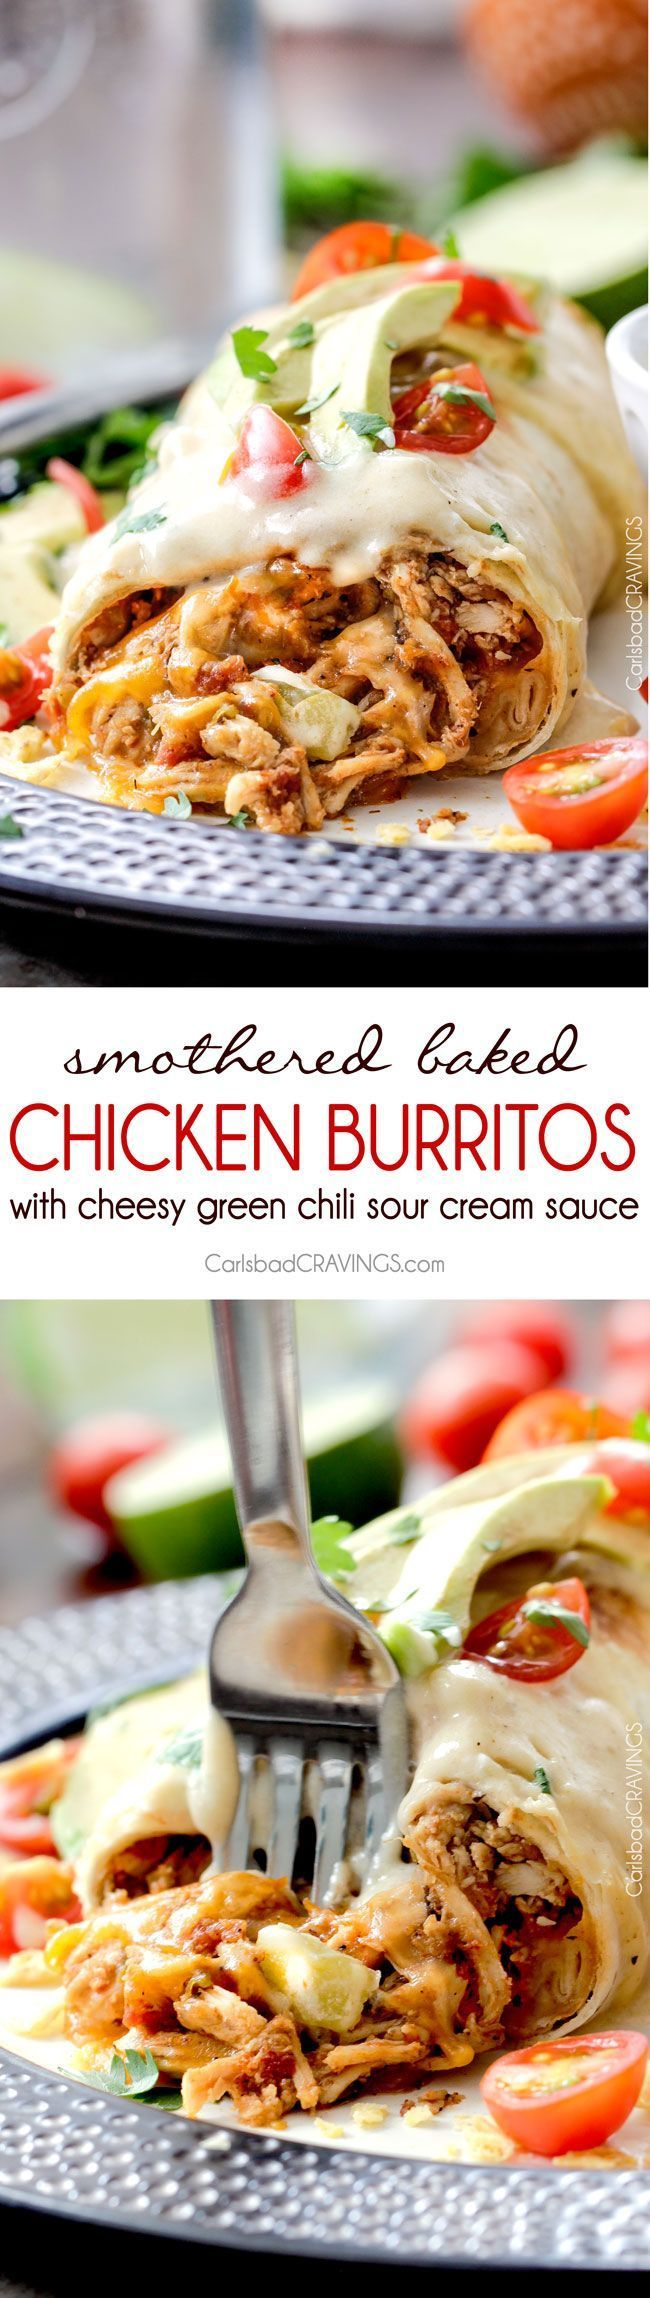 """Smothered Baked Chicken Burritos AKA """"skinny chimichangas"""" are better than any restaurant without all the calories! made super easy by stuffing with the BEST slow cooker Mexican chicken and then baked to golden perfection and smothered in most incredible cheesy green chili sour cream sauce. via @Carlsbad Cravings"""